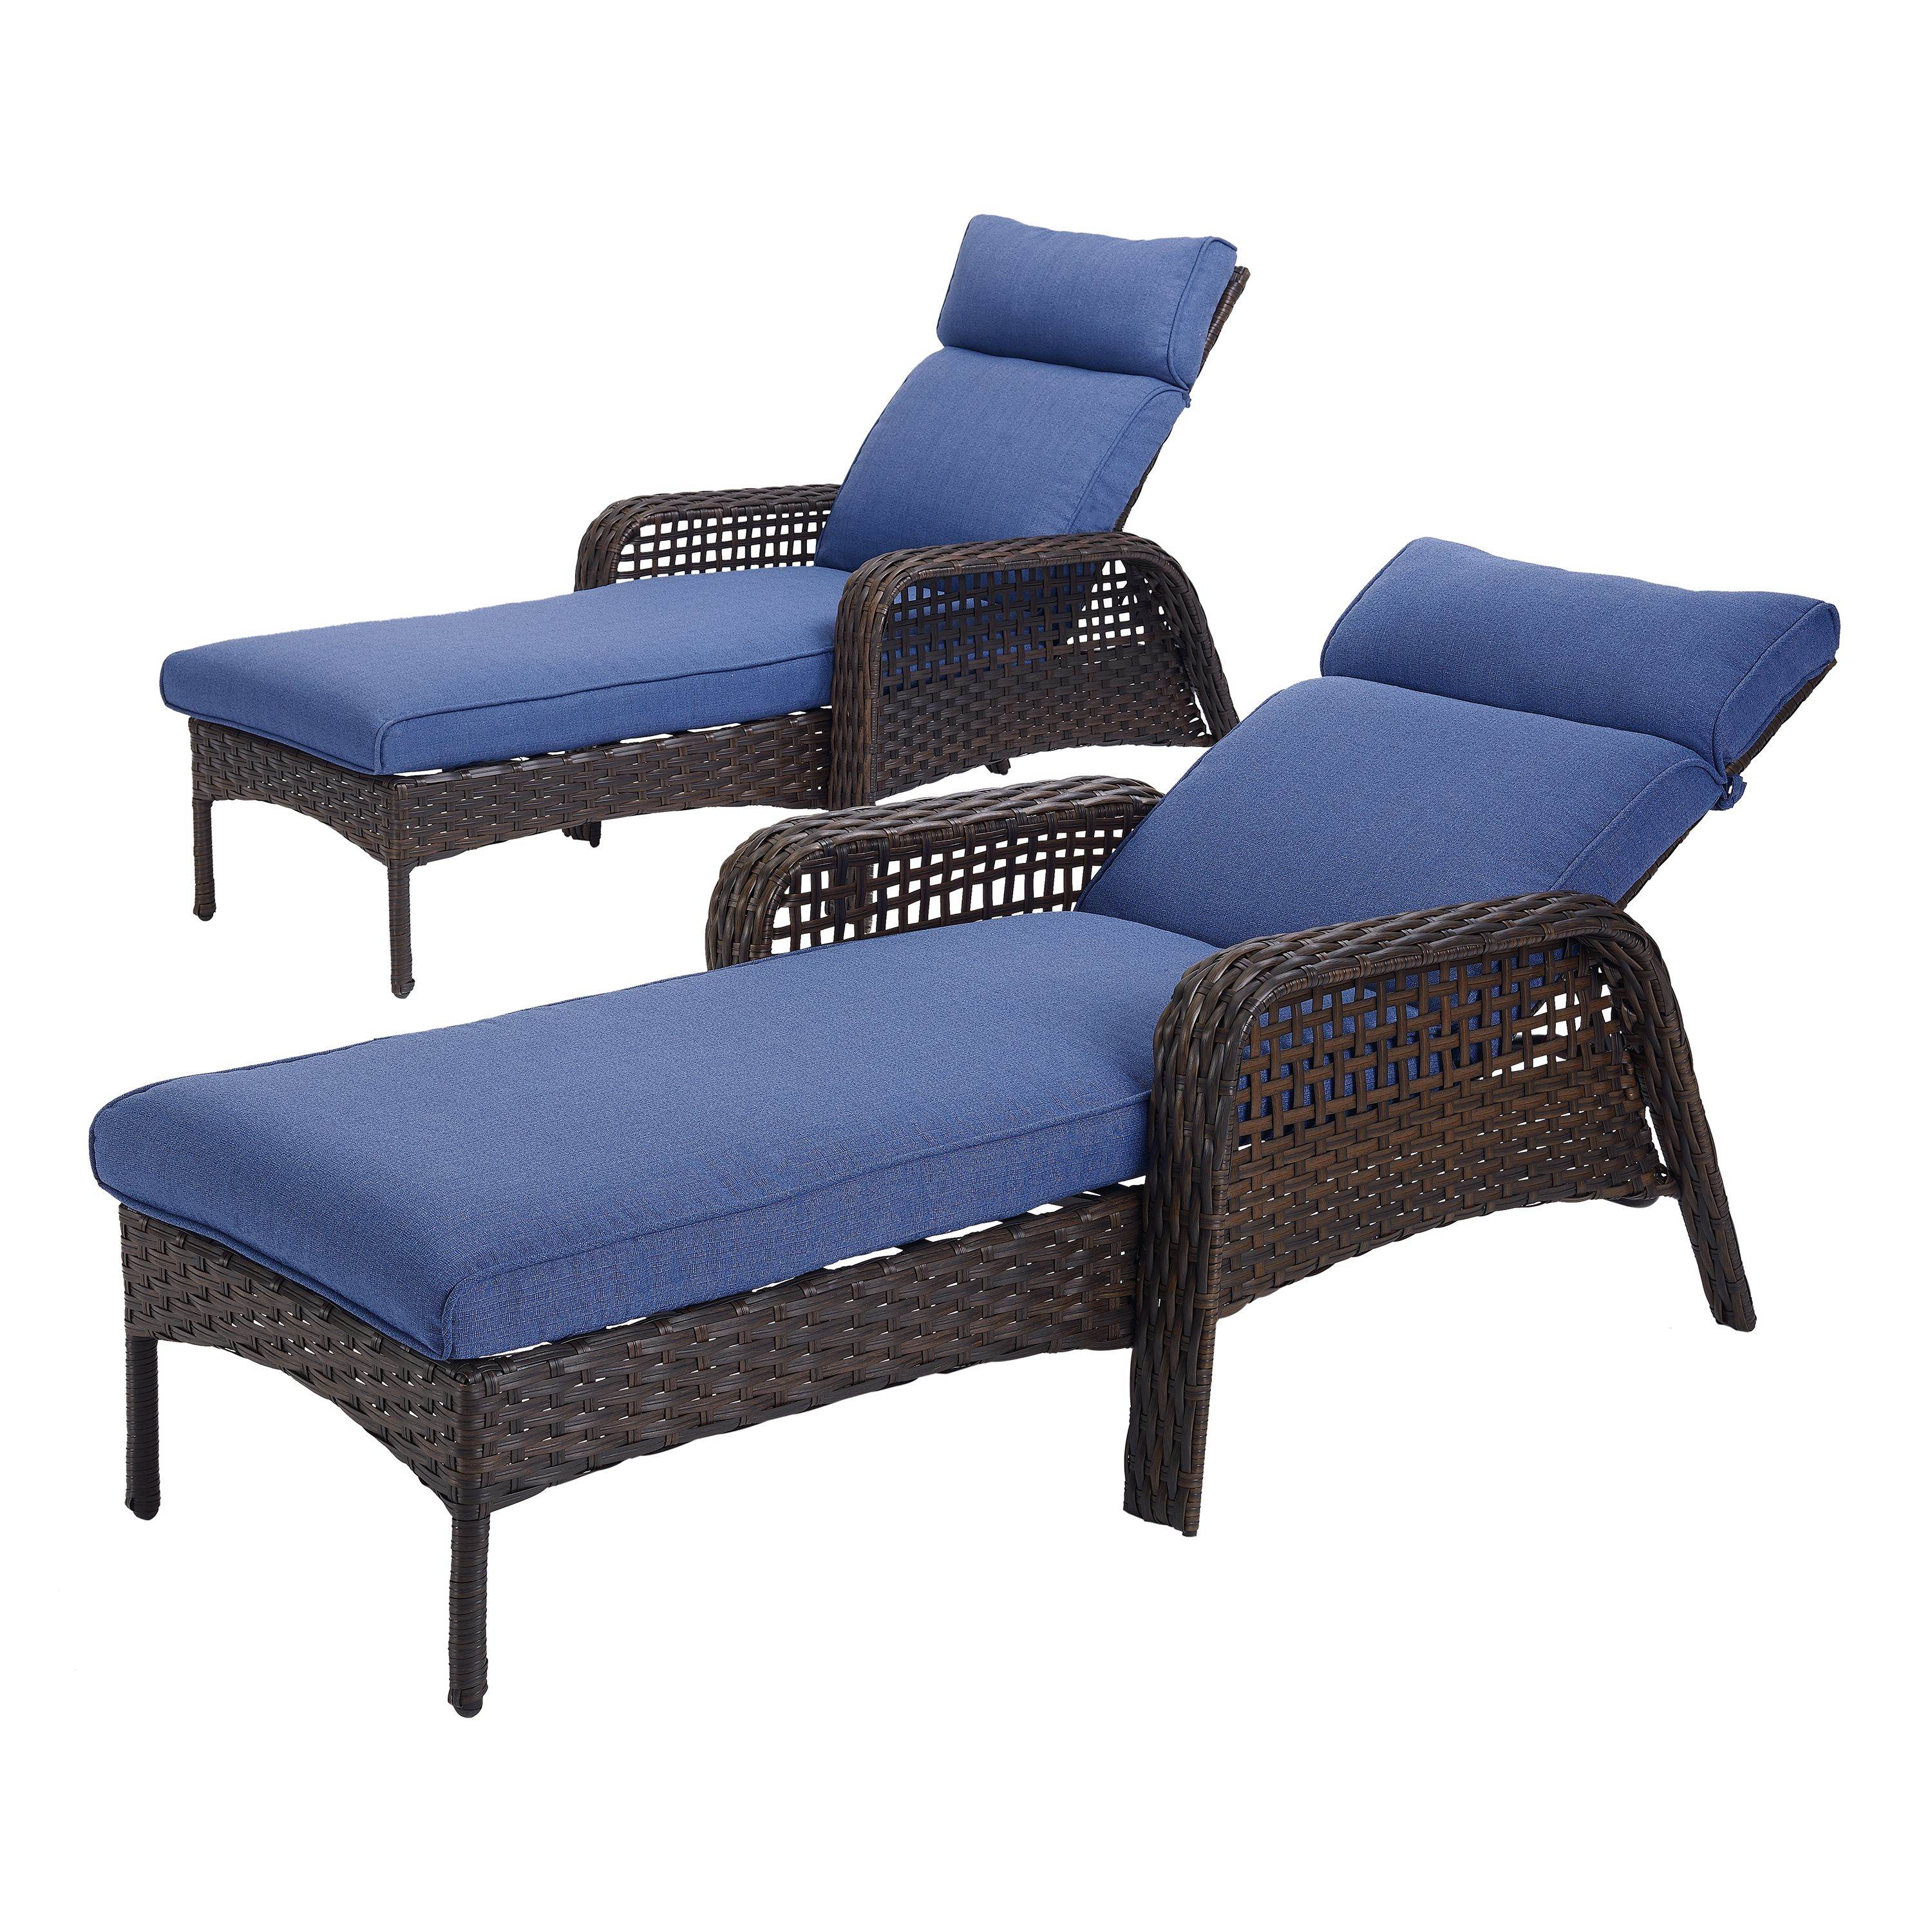 Better Homes & Gardens Ravenbrooke Patio Chaise Lounge Chair with Blue Cushions